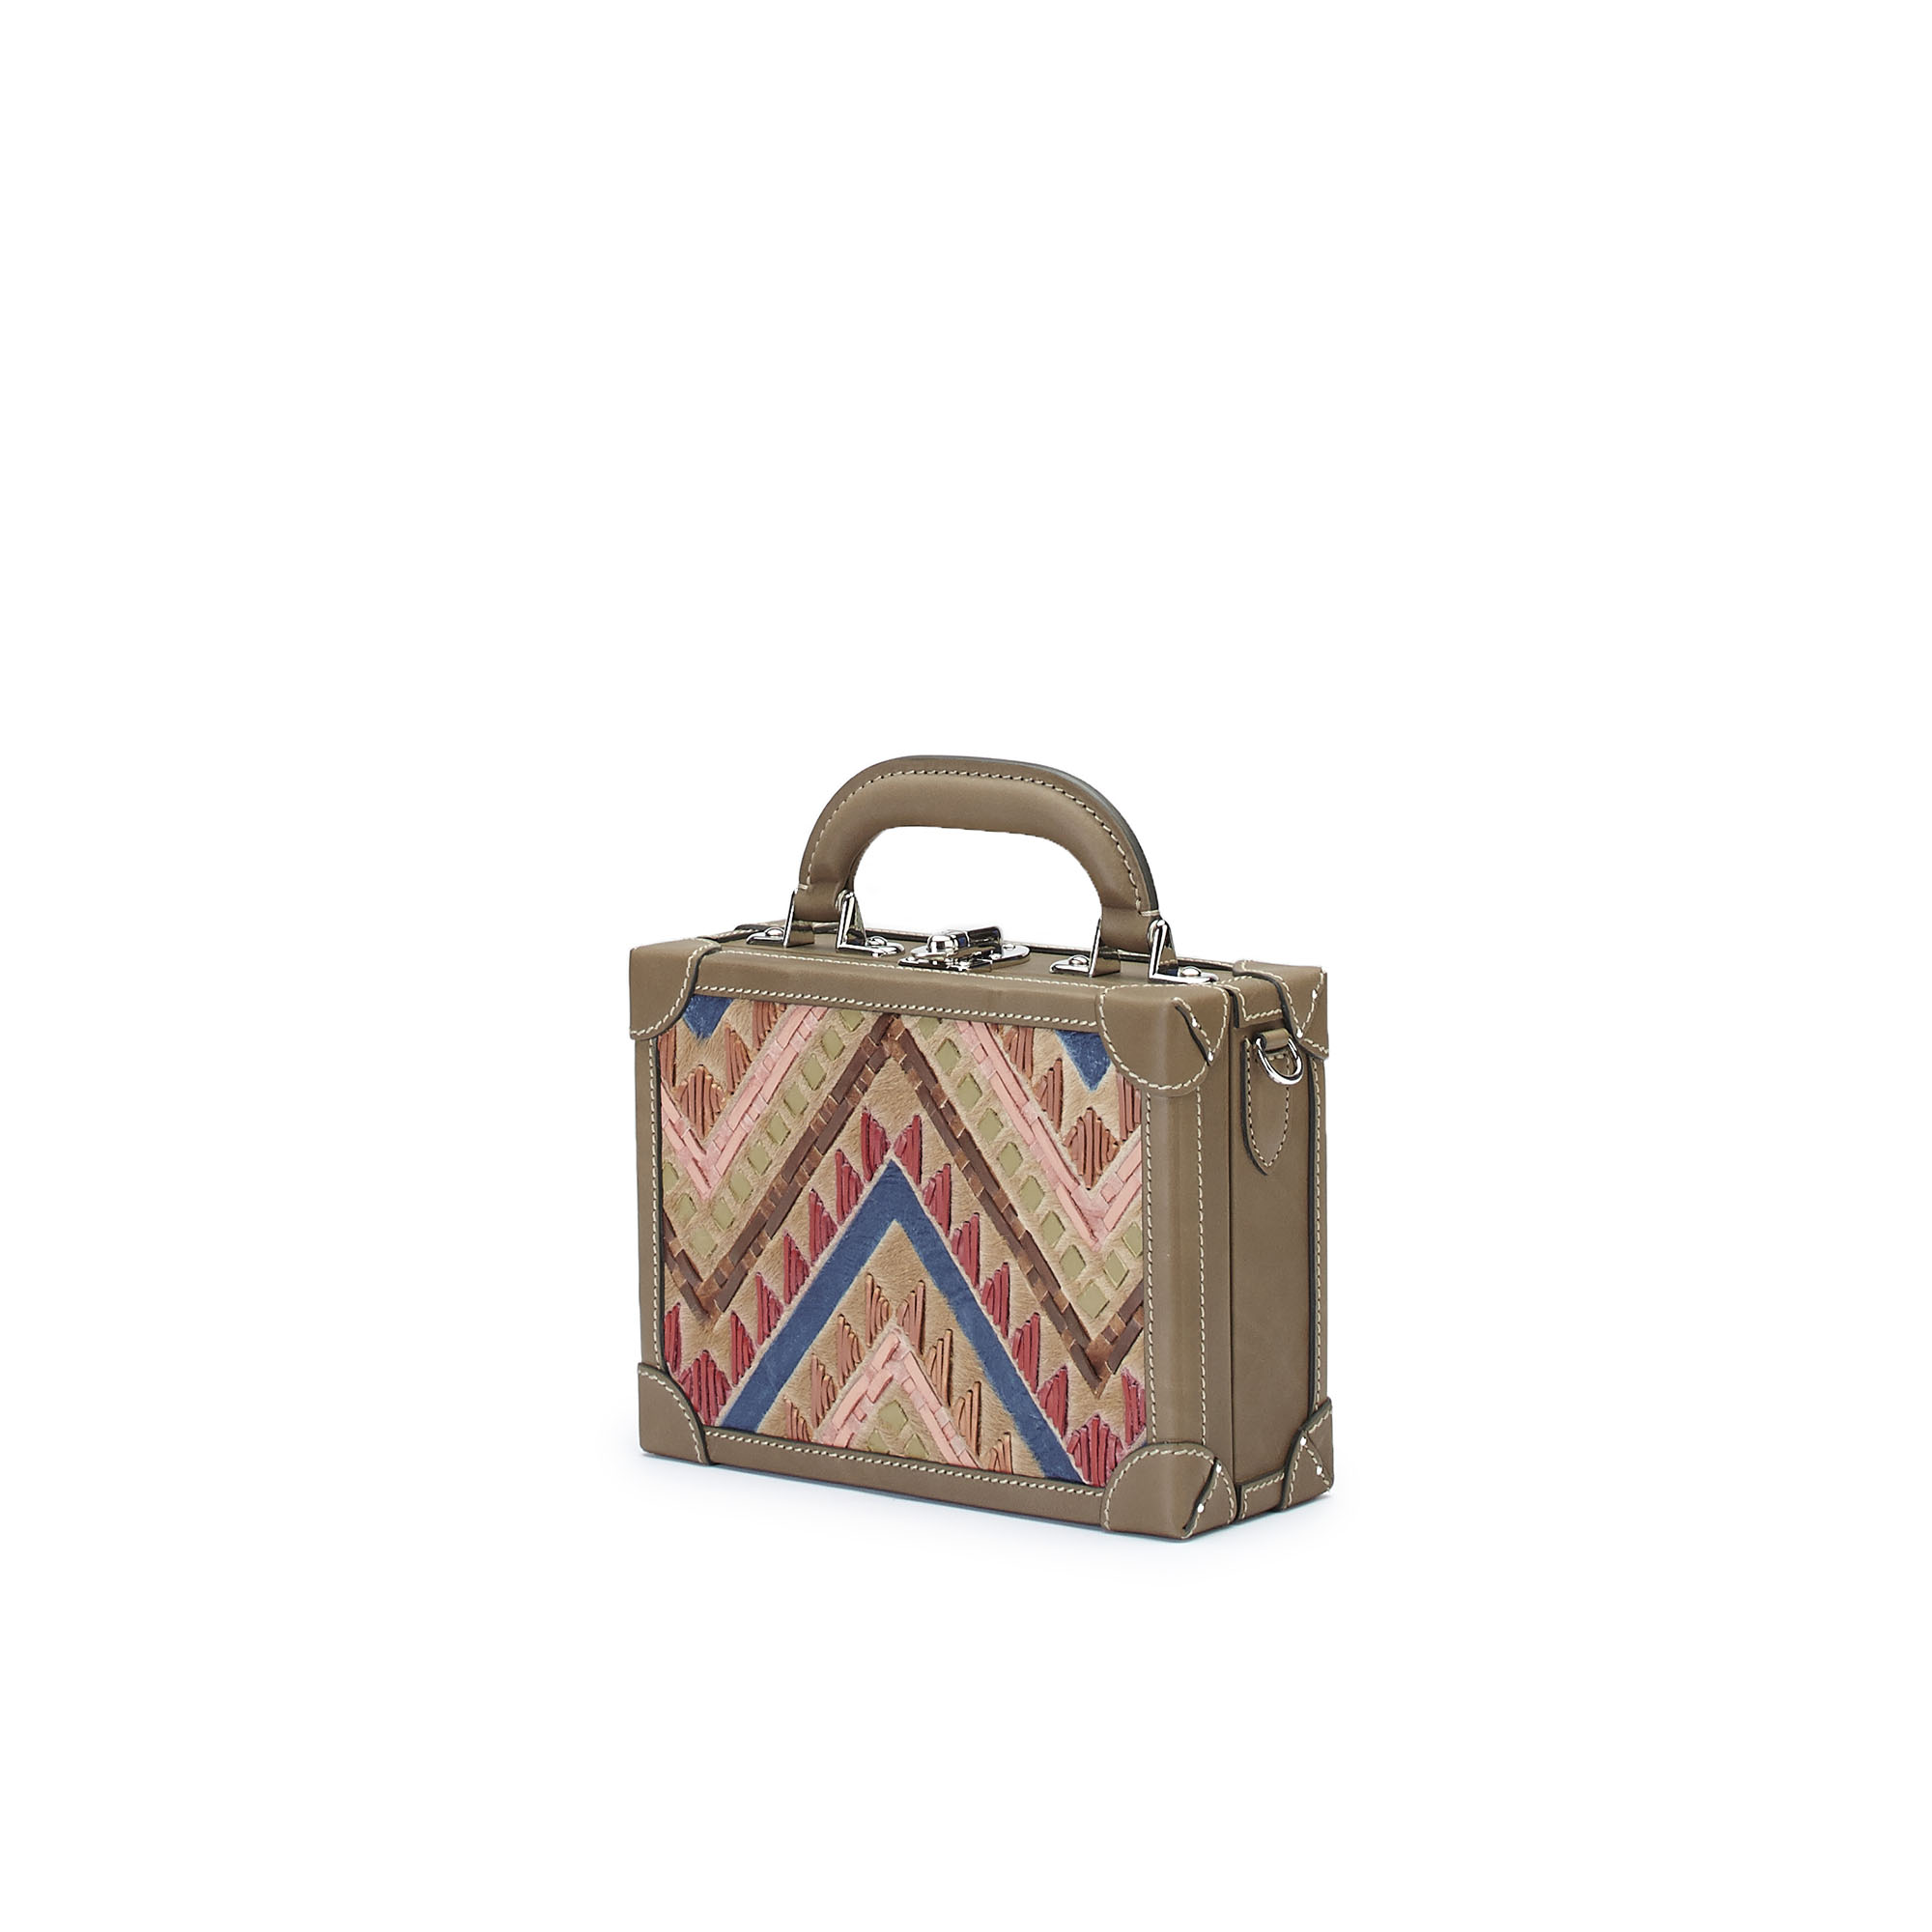 The multicolor haircalf woven Squared Bertoncina suitcase by Bertoni 1949 02